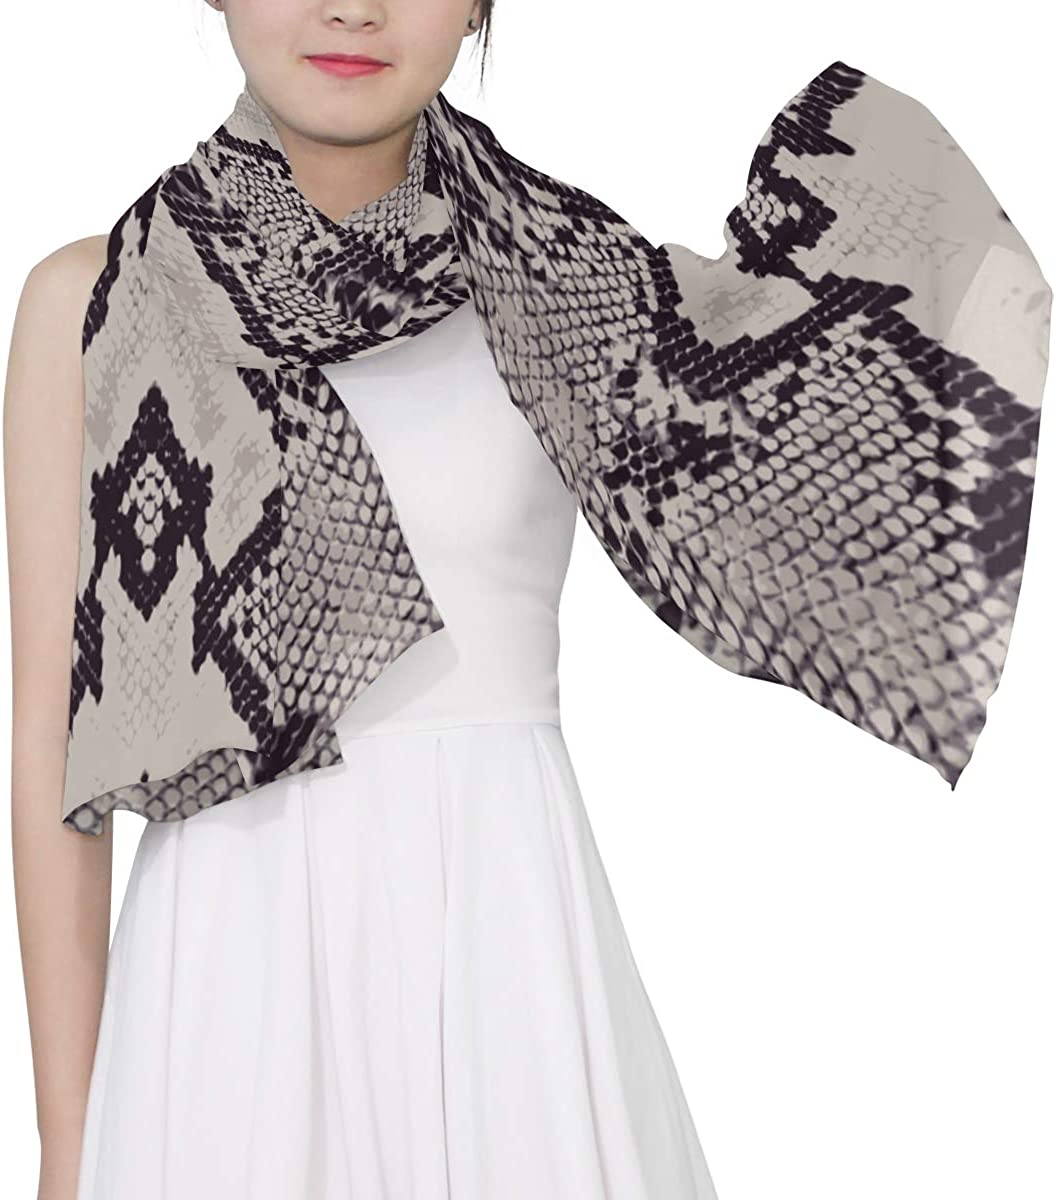 Different Snake Skin Unique Fashion Scarf For Women Lightweight Fashion Fall Winter Print Scarves Shawl Wraps Gifts For Early Spring